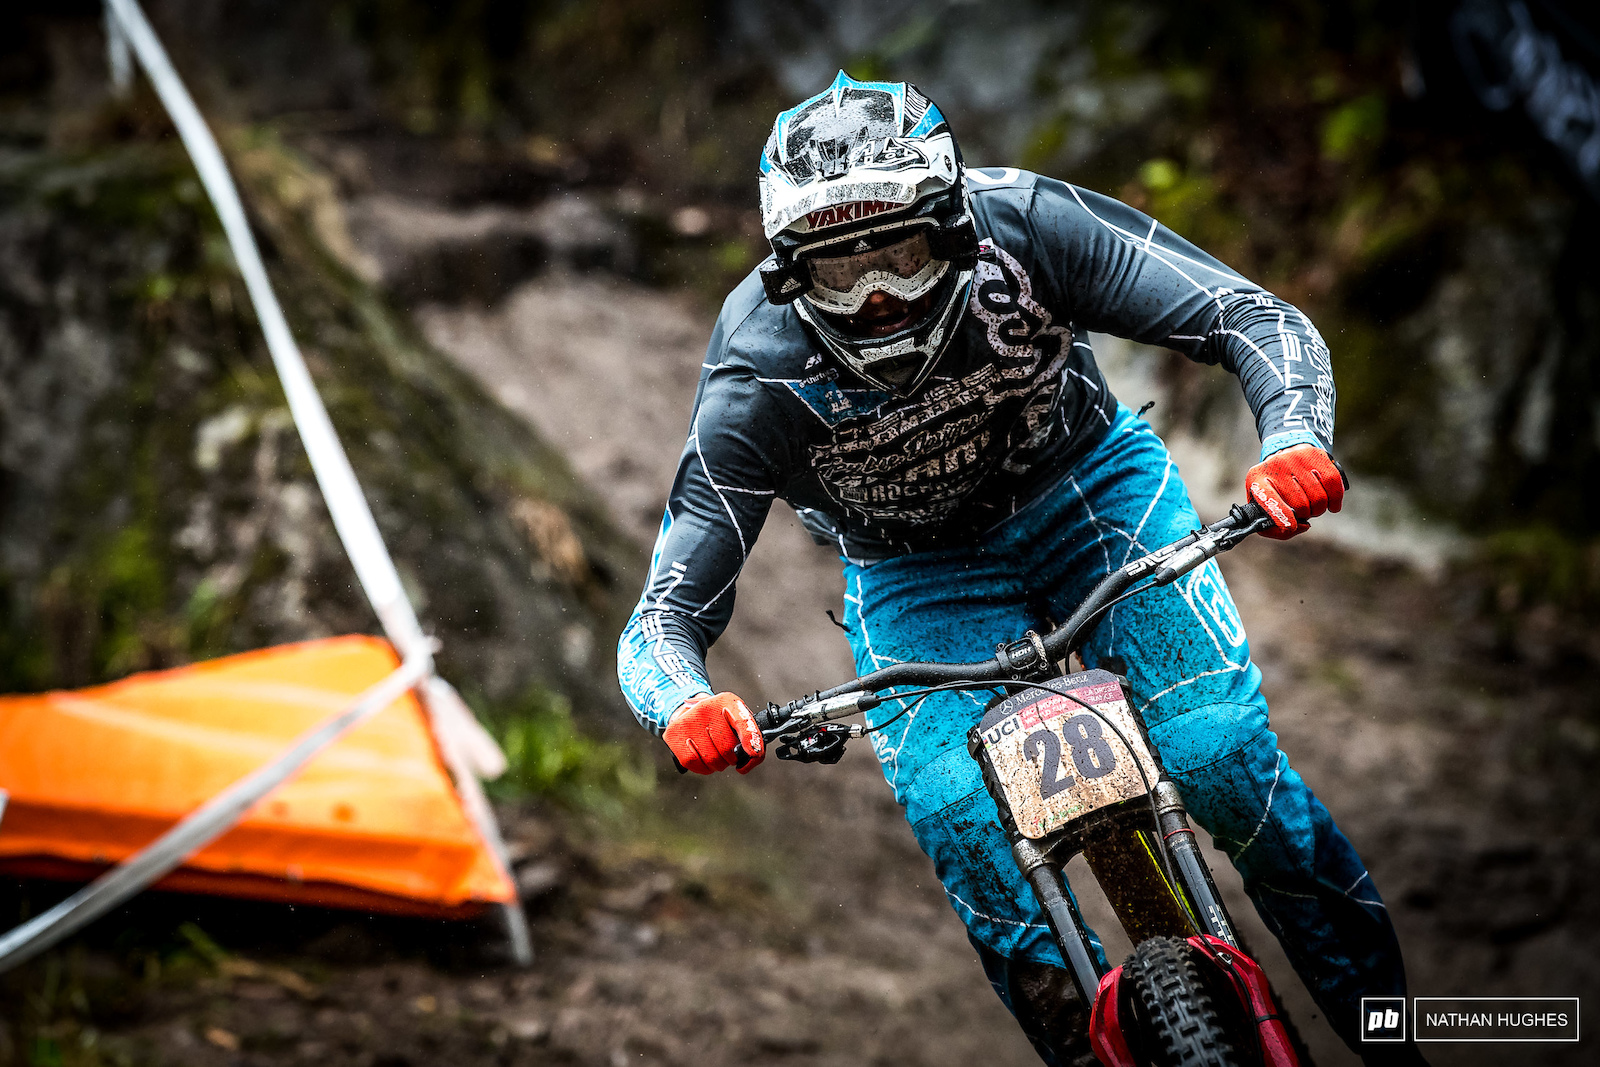 Jack Moir has a strong mud game but as no points were at stake for qulaies he ll have been biding his time for finals.